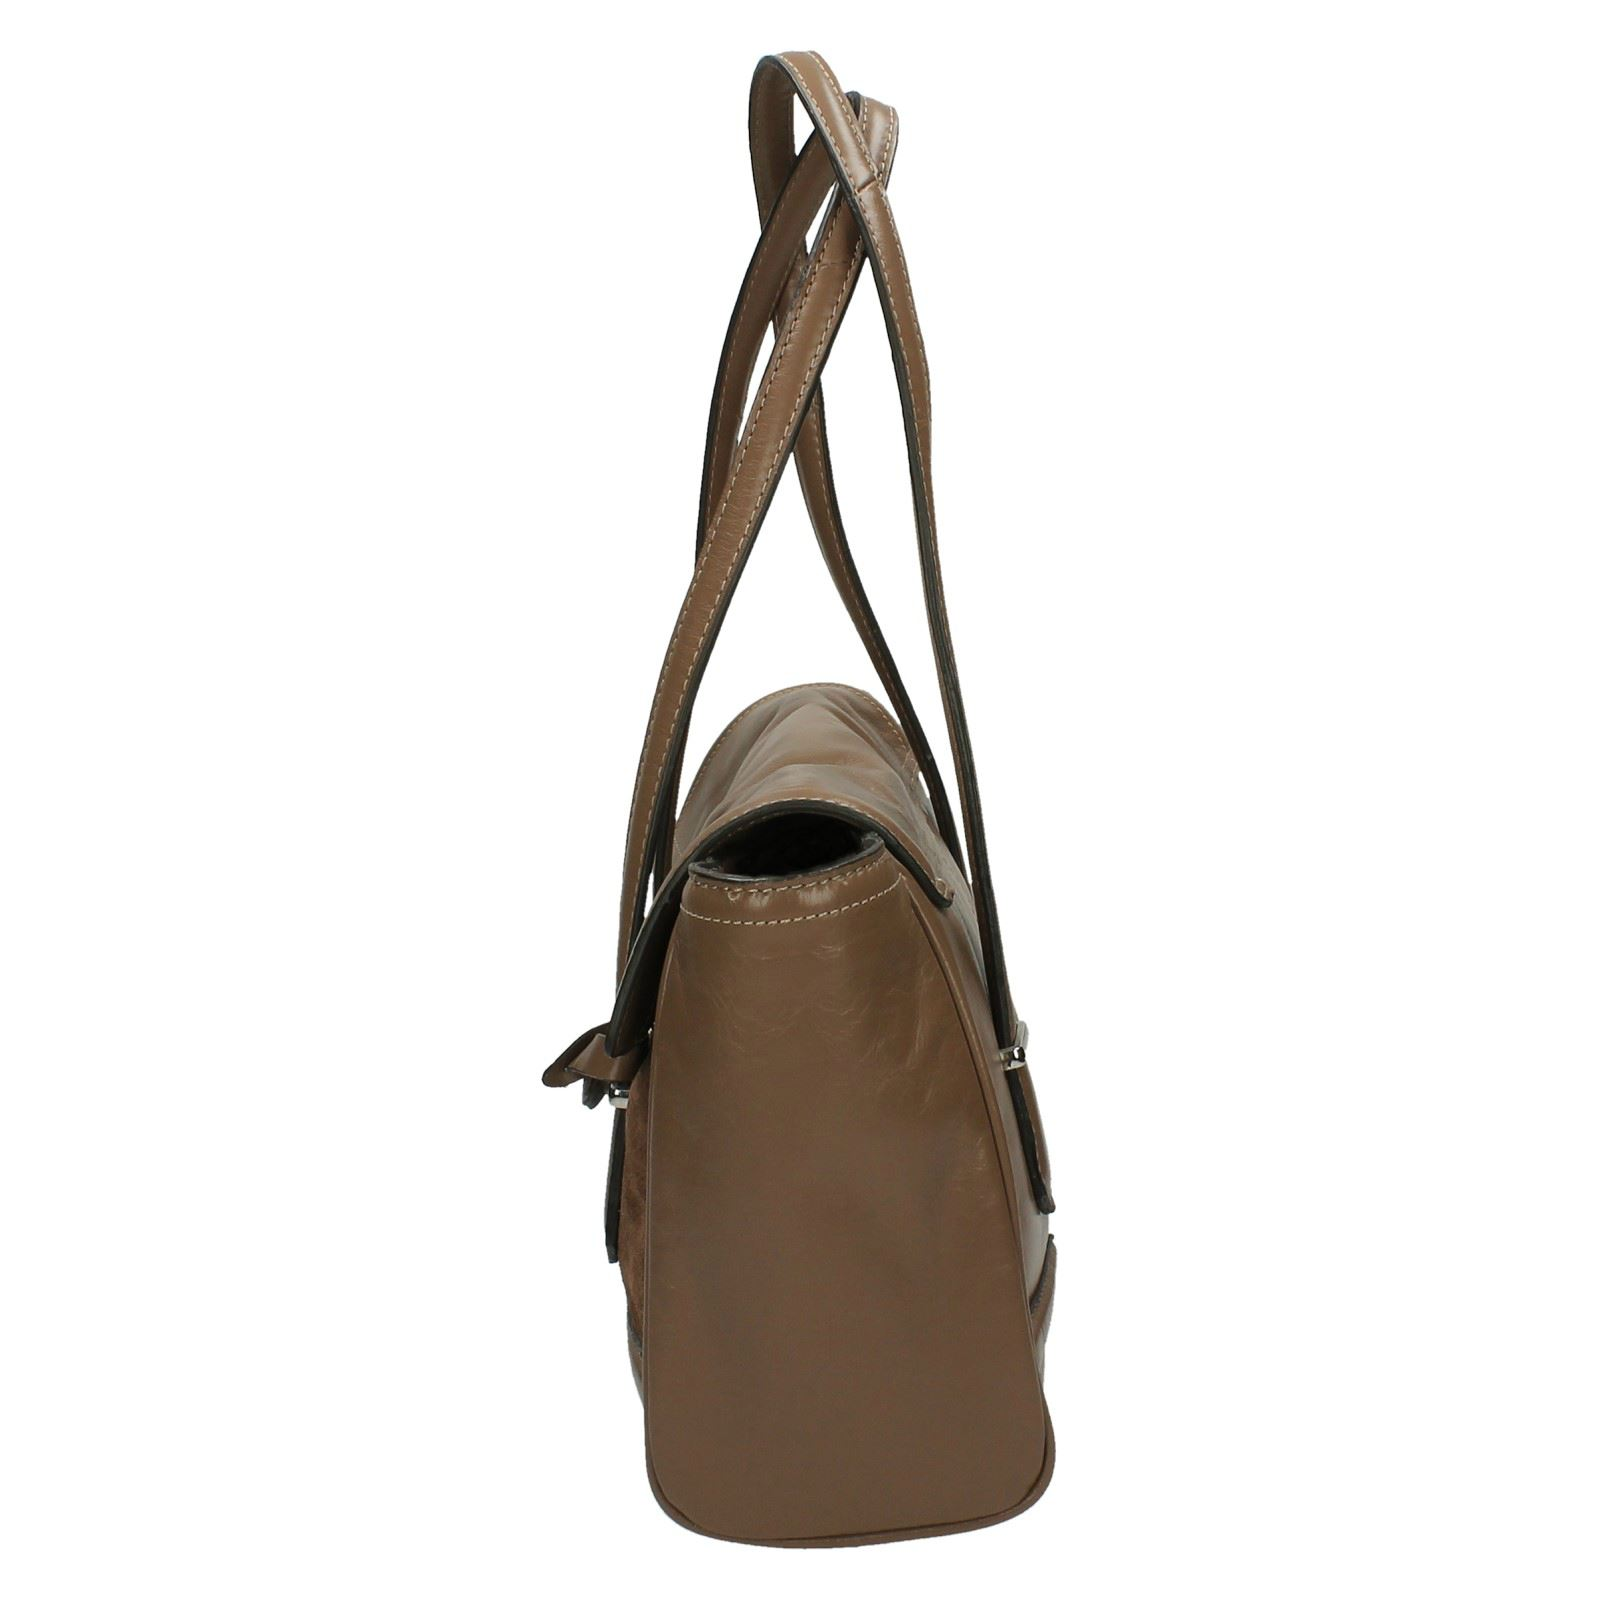 Leather Clarks Ladies Nude Handbag Tanana River pvHqPaw